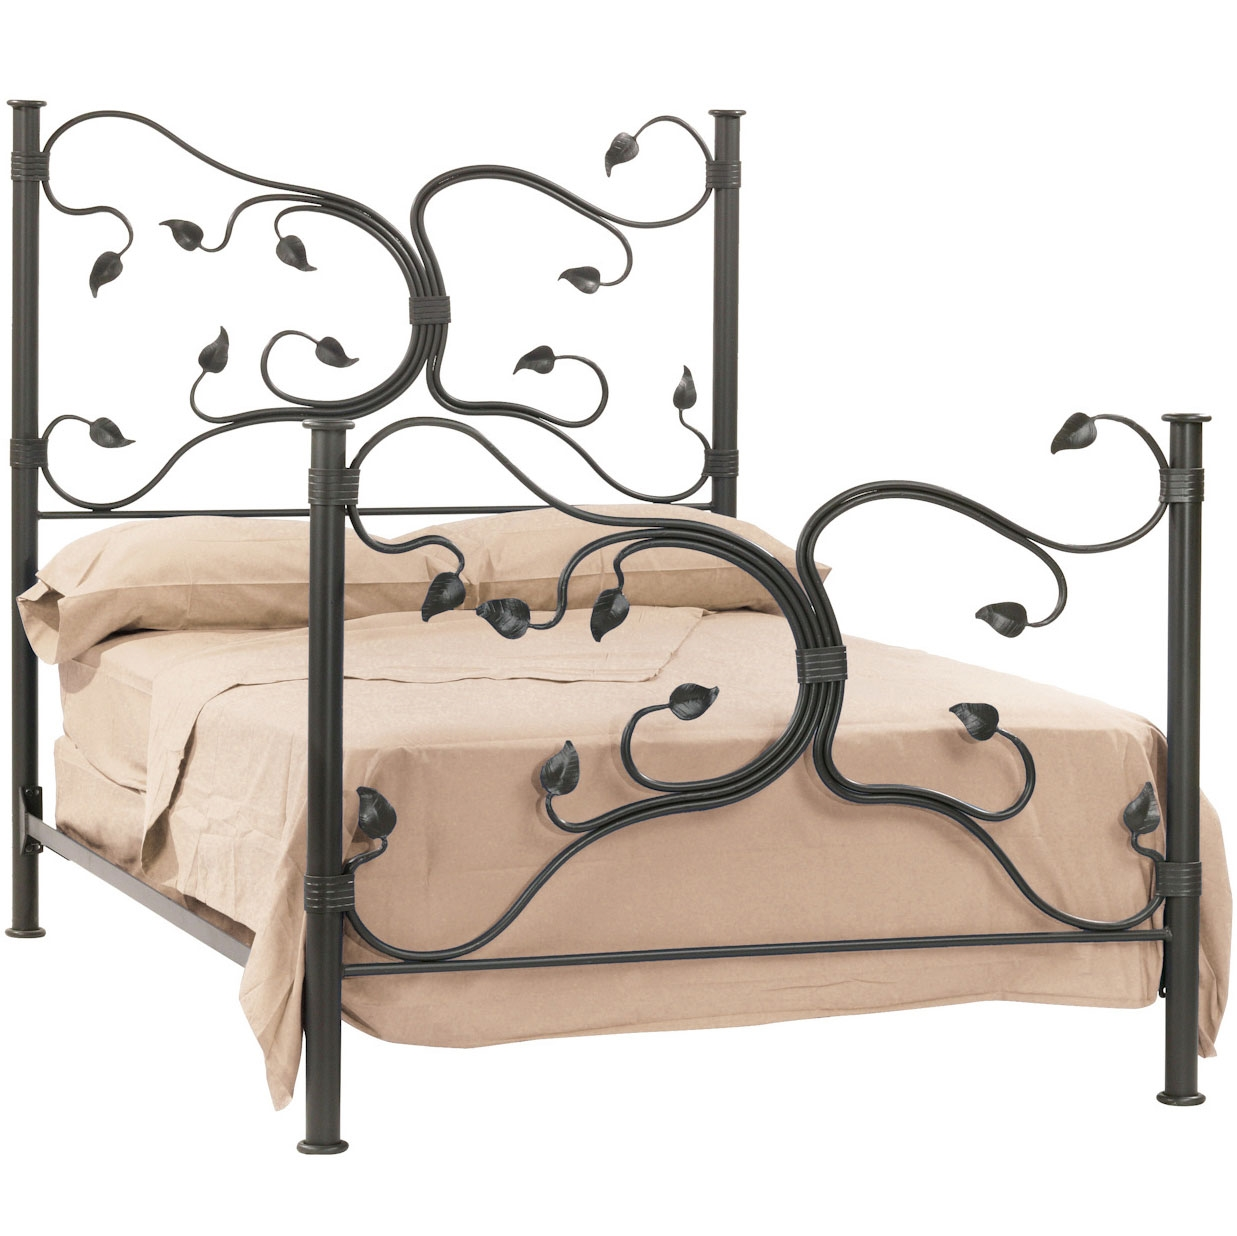 Wrought Iron Headboard And Bed Frame From Stone County Ironworks Larger Photo